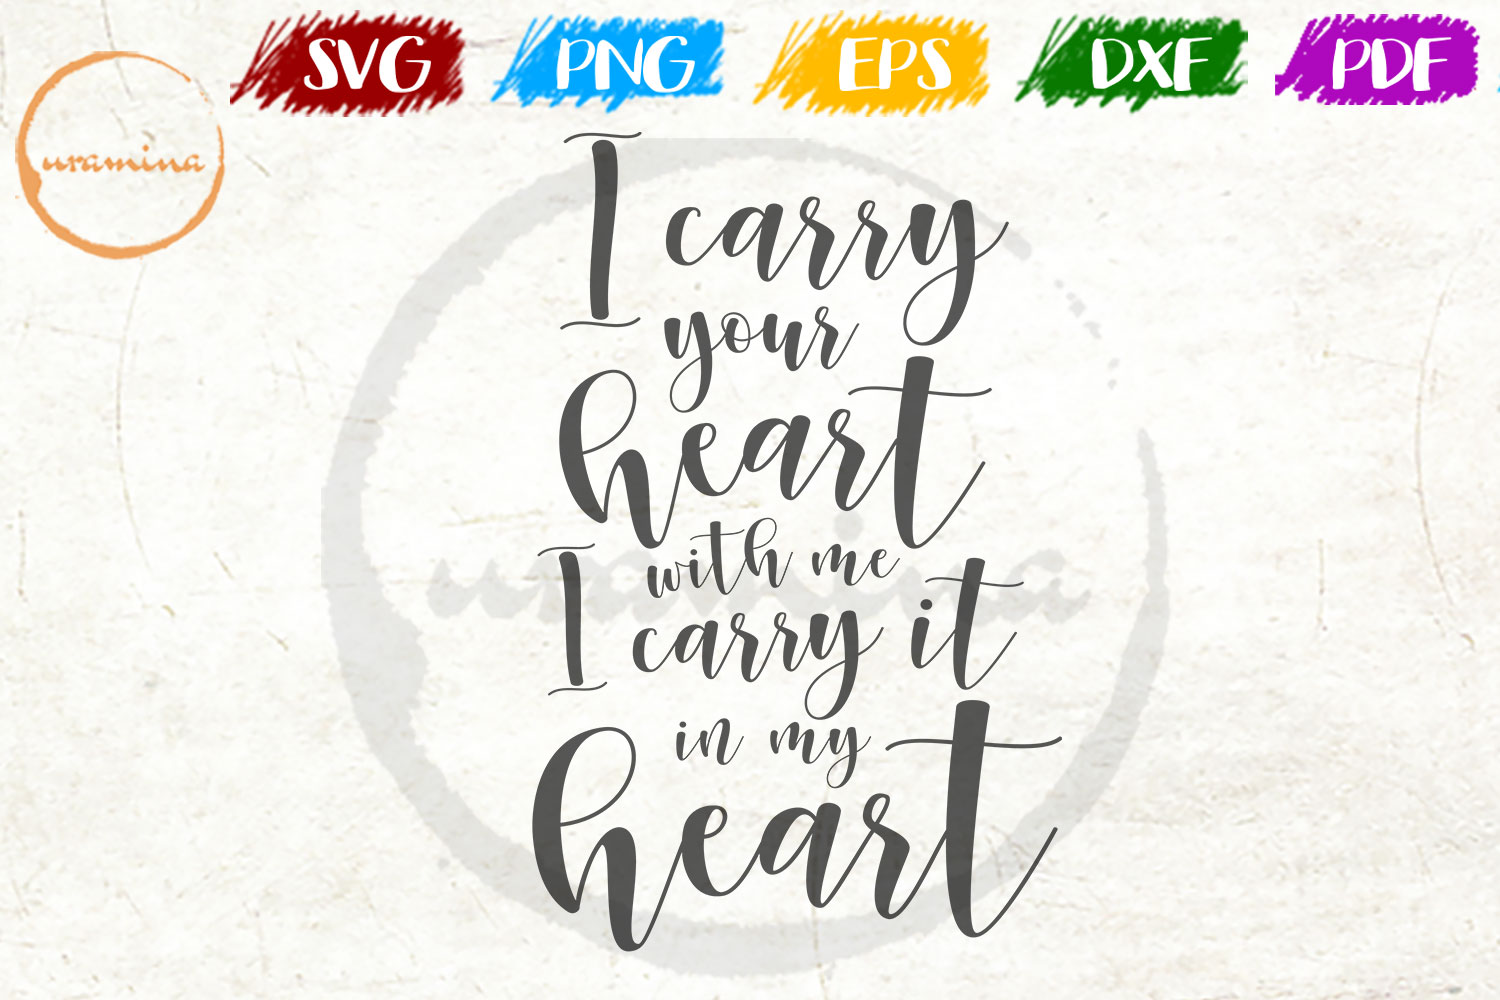 Download Free I Carry Your Heart With Me Graphic By Uramina Creative Fabrica for Cricut Explore, Silhouette and other cutting machines.